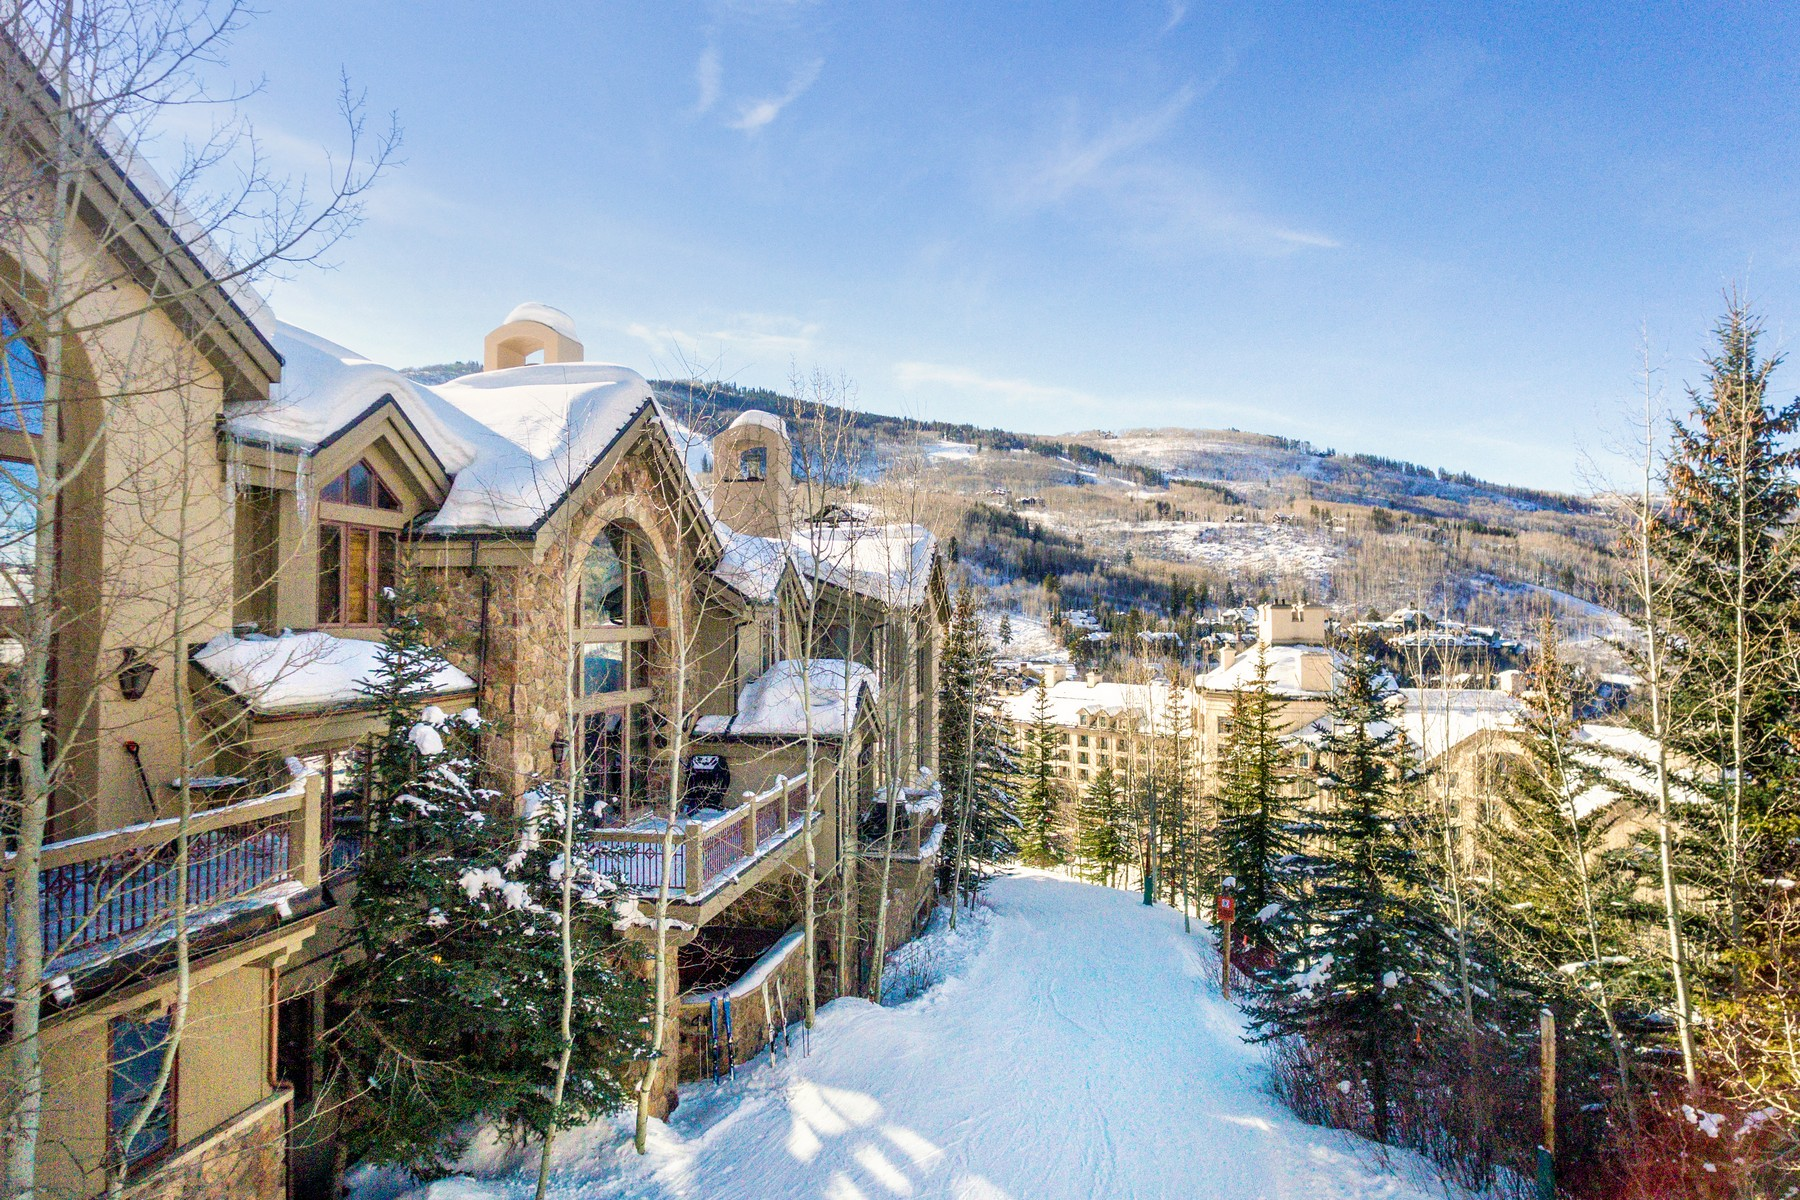 Townhouse for Sale at Prestigious Ski-In/Ski-Out Enclave 52 Highlands Lane Beaver Creek, Beaver Creek, Colorado, 81620 United States